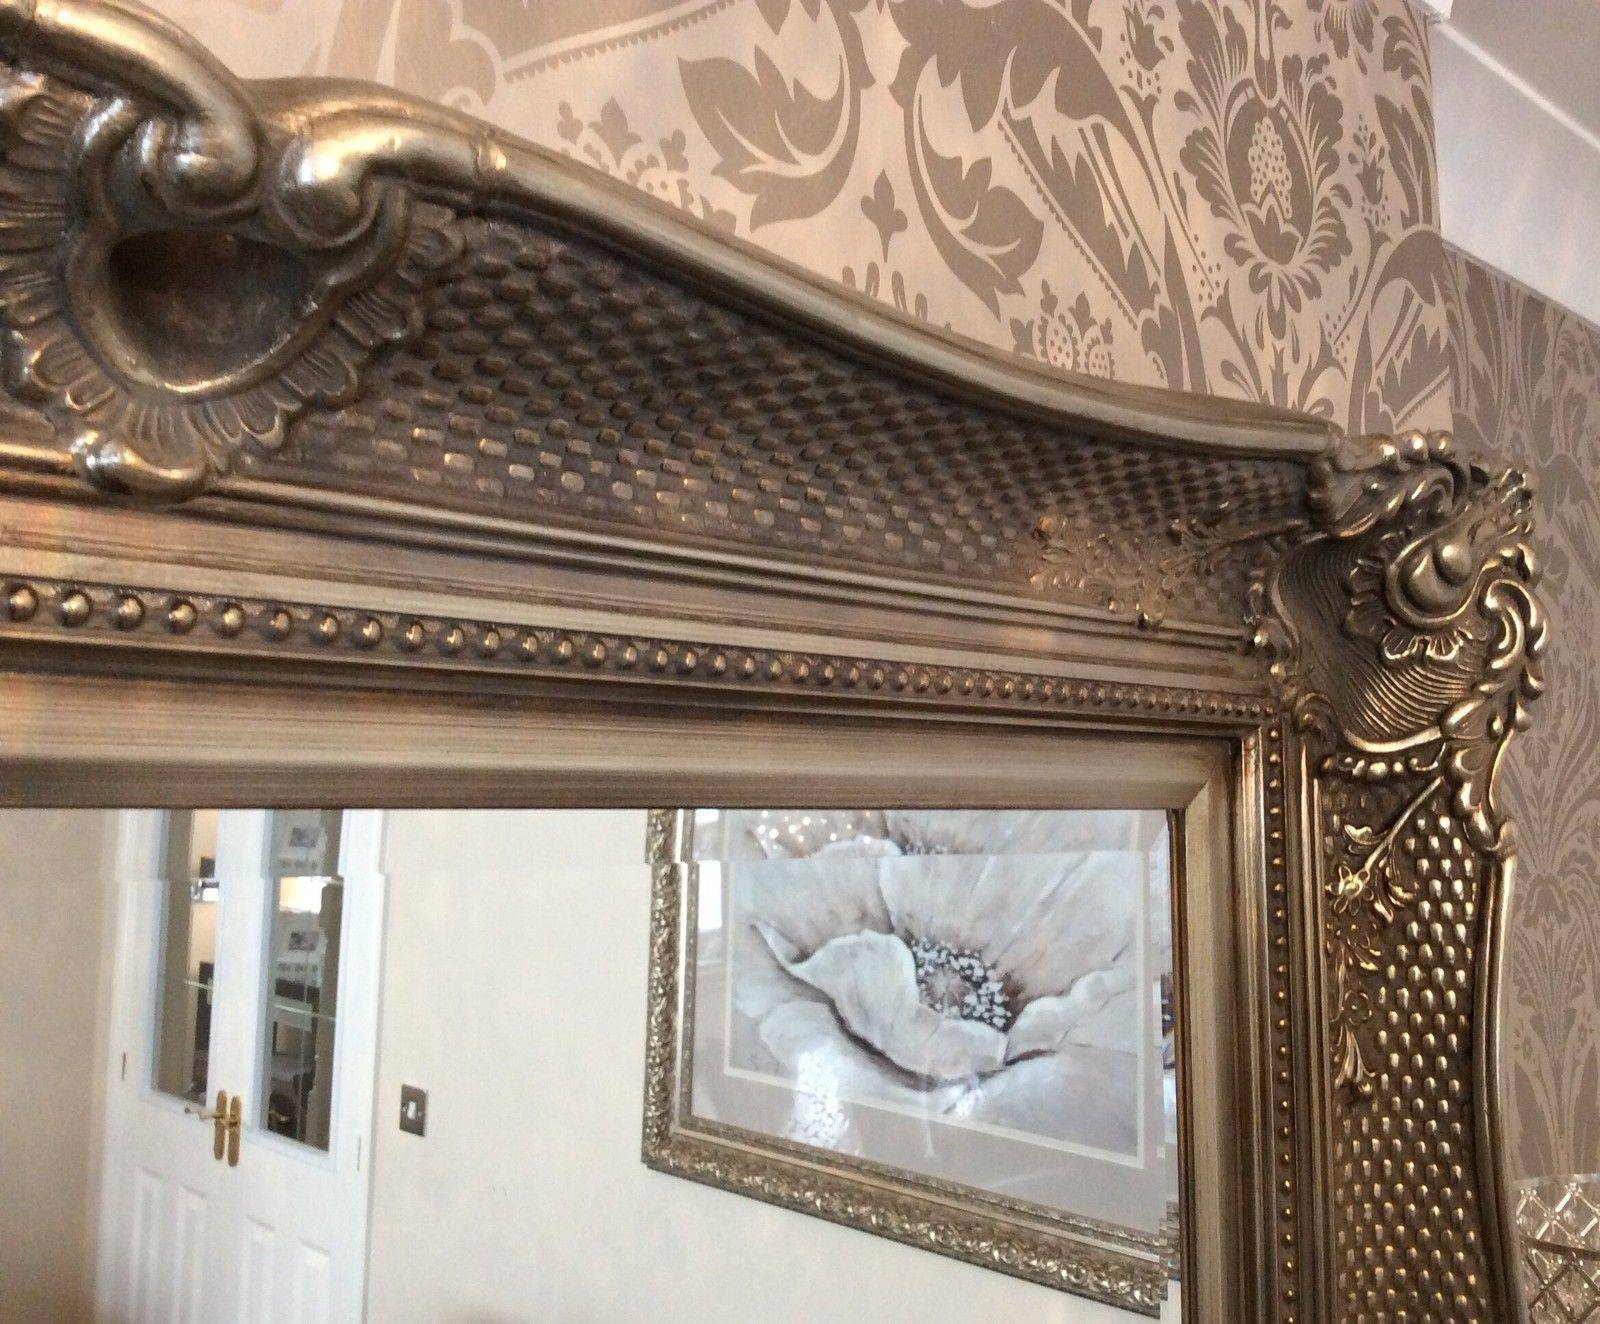 Wonderful Ornate Fabulous Extra Large Wall Mirror – Range Of Sizes With Extra Large Ornate Mirrors (View 24 of 25)